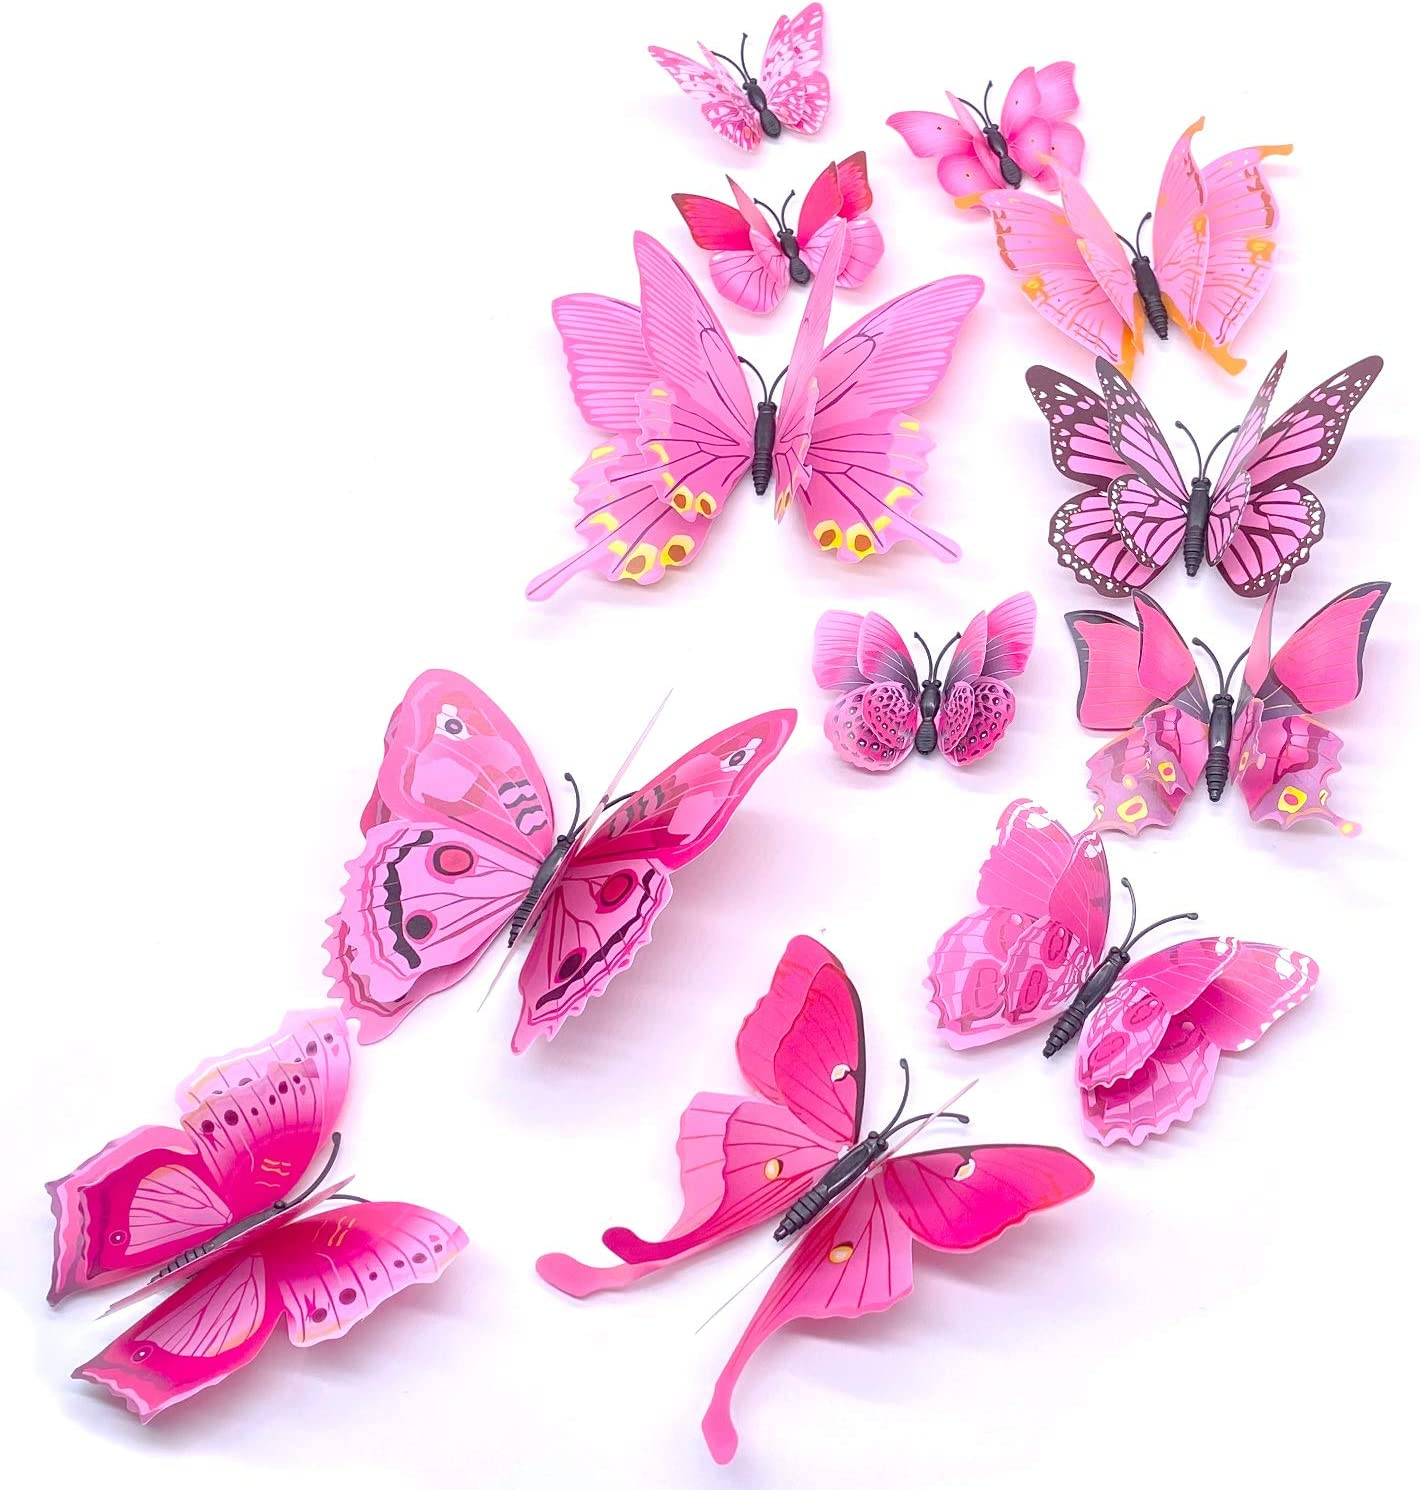 24PCS Butterfly Wall Decals,3D Butterflies Wall Stickers Removable Mural Wall Stickers Art Decor for Home,Kids Girls Room Decor Party Supplies Decorations (Pink)